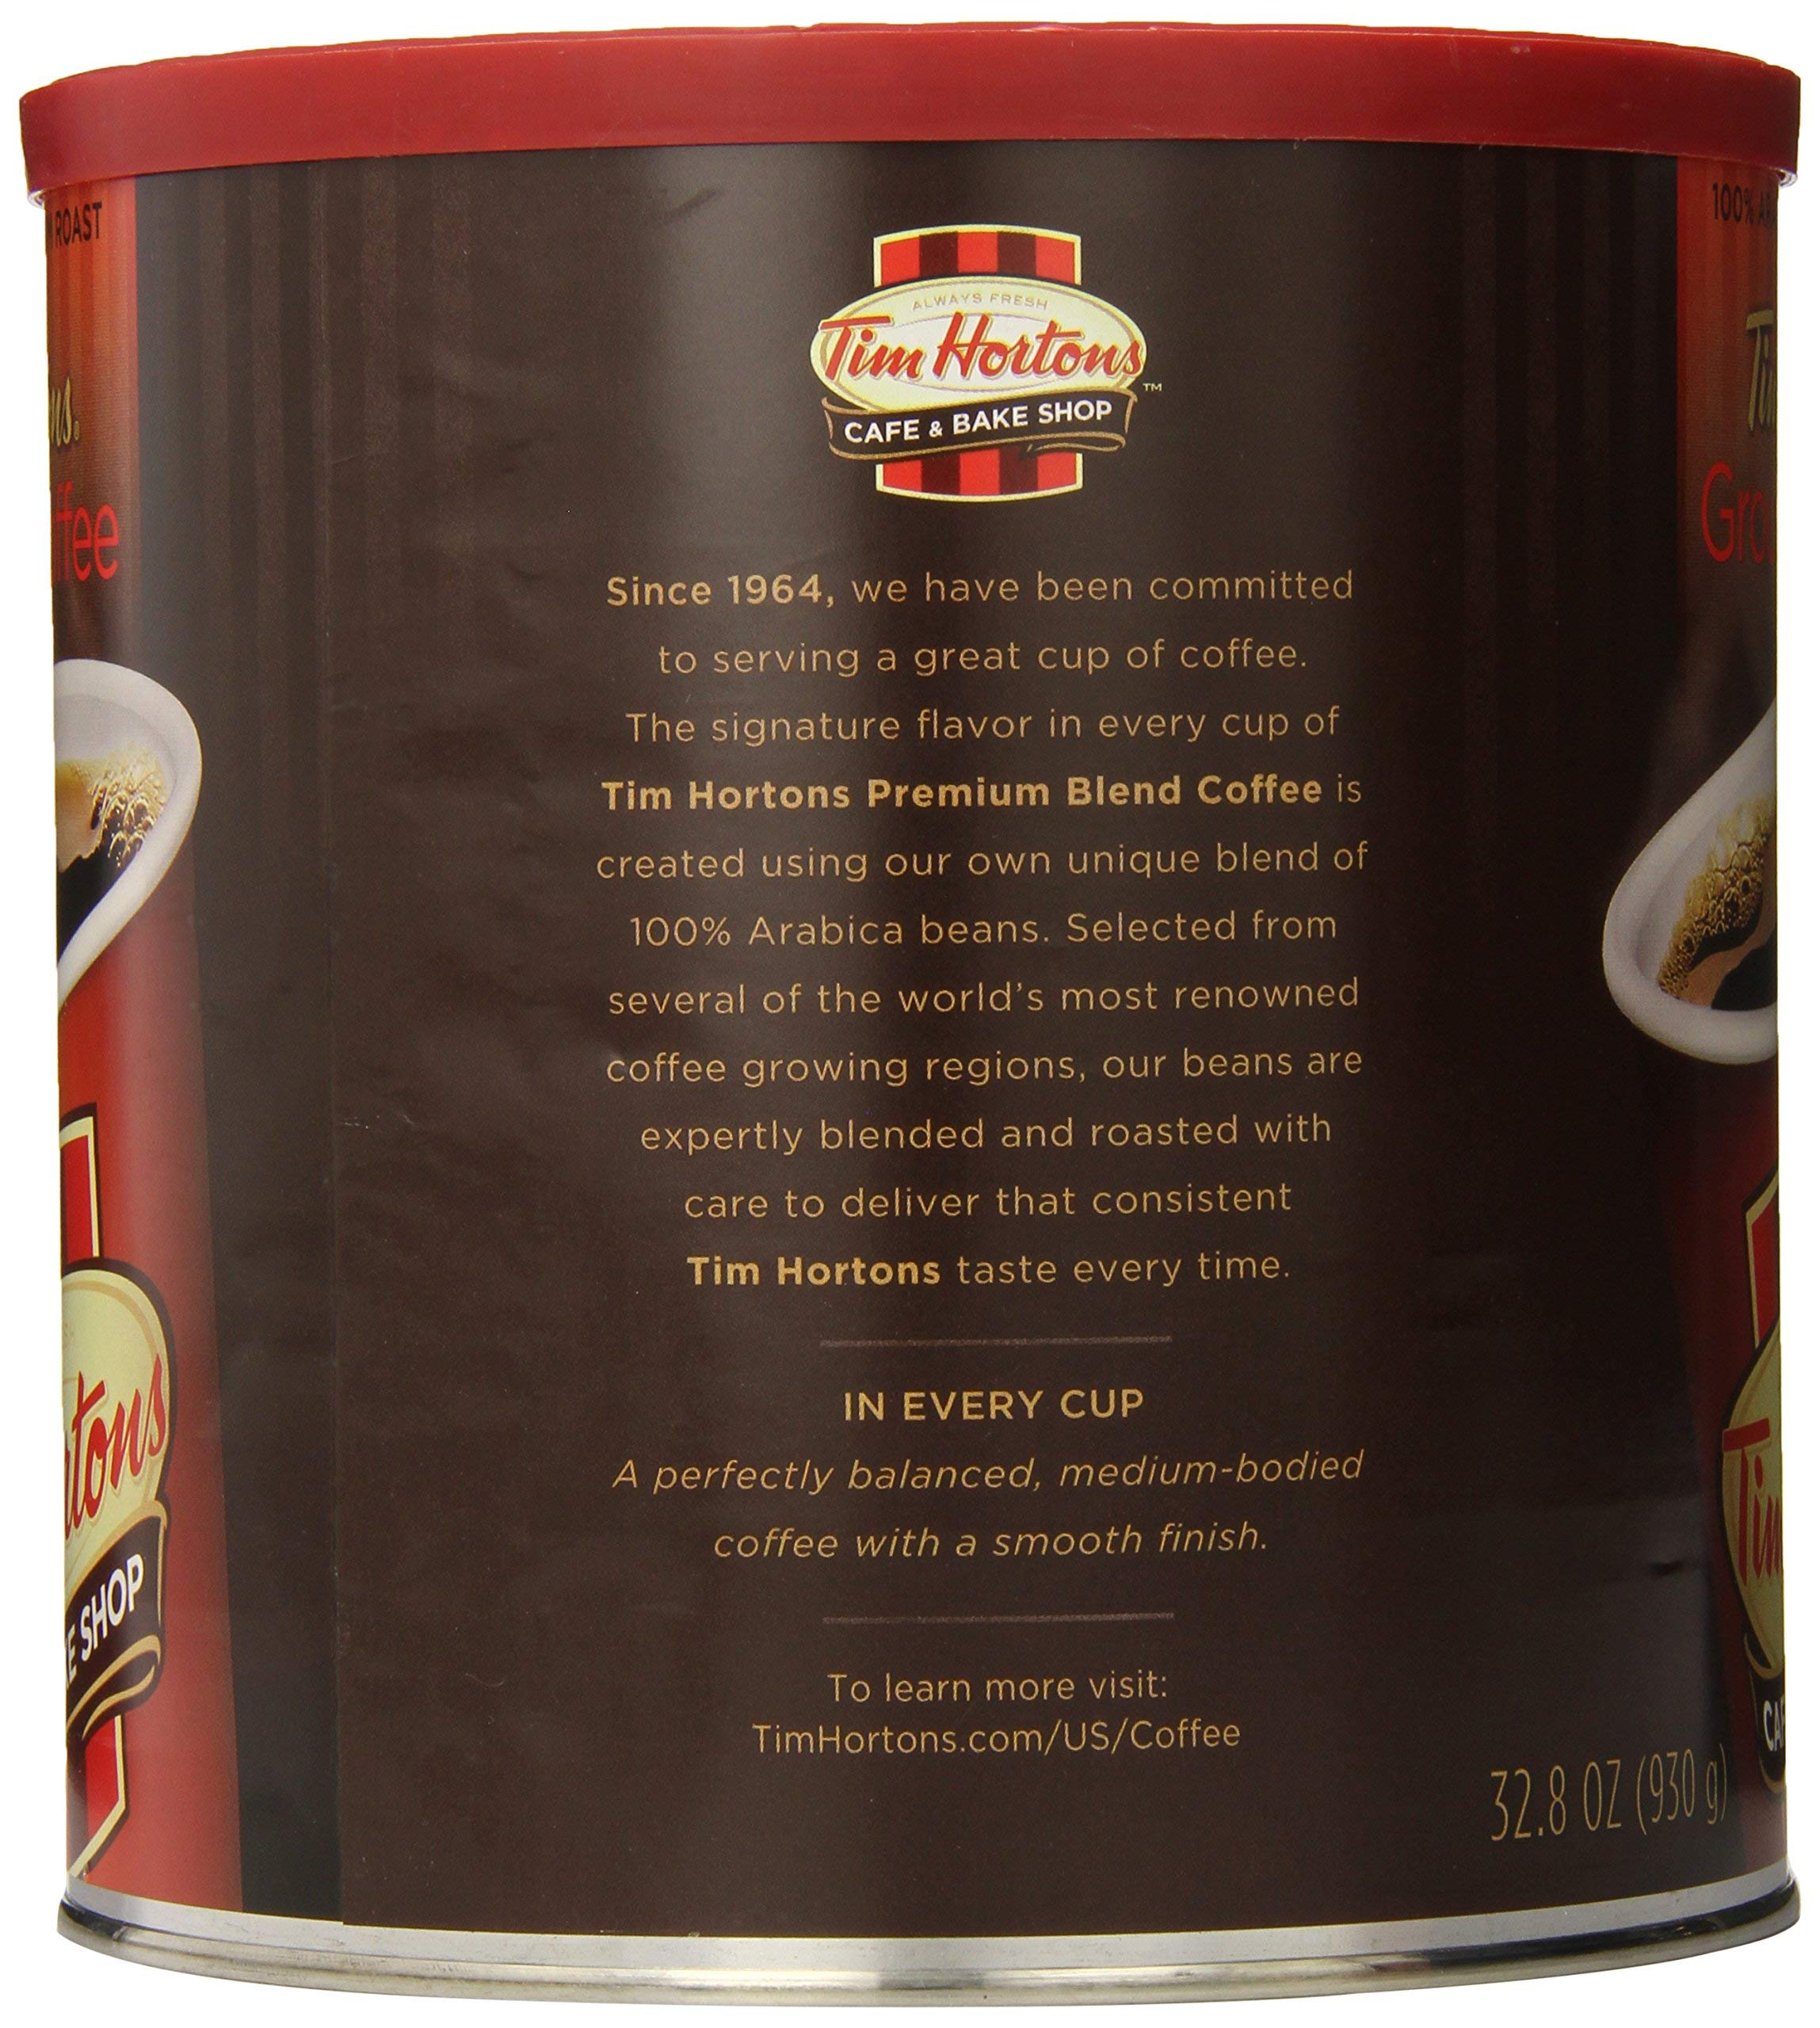 Tim Hortons HBRKMMCX 100% Arabica Medium Roast Original Blend Ground Coffee, 32.8 Ounce, Pack of 2 by Tim Hortons (Image #2)